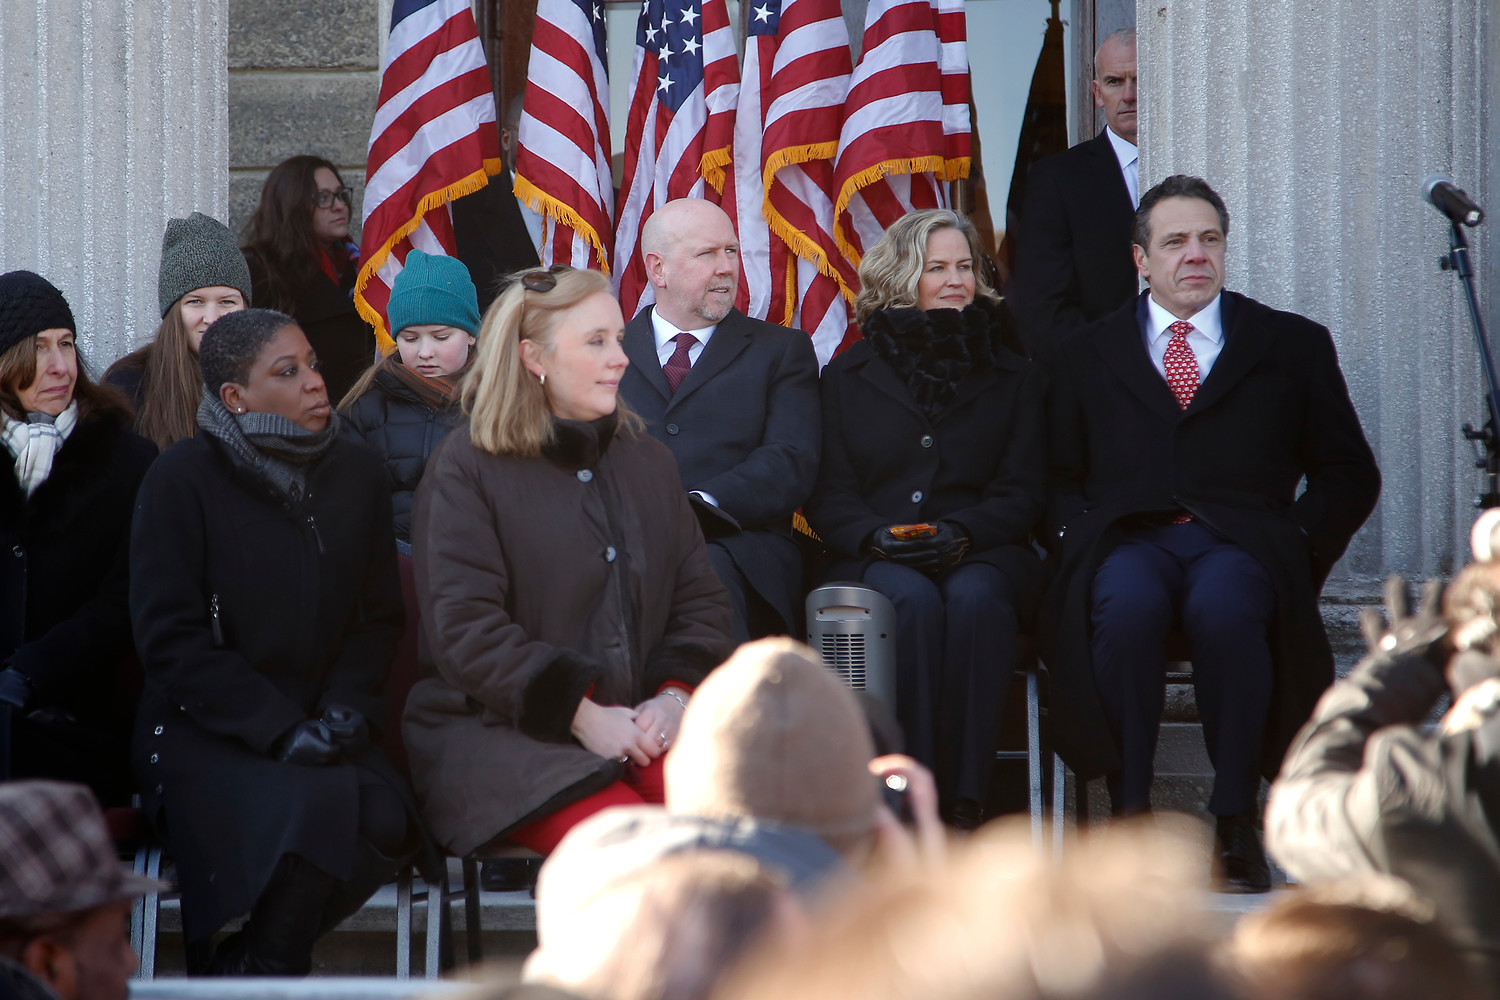 Cuomo, right, administered the oath of office to Curran, who was joined by her family on the steps of the Theodore Roosevelt Executive and Legislative Building in Mineola.